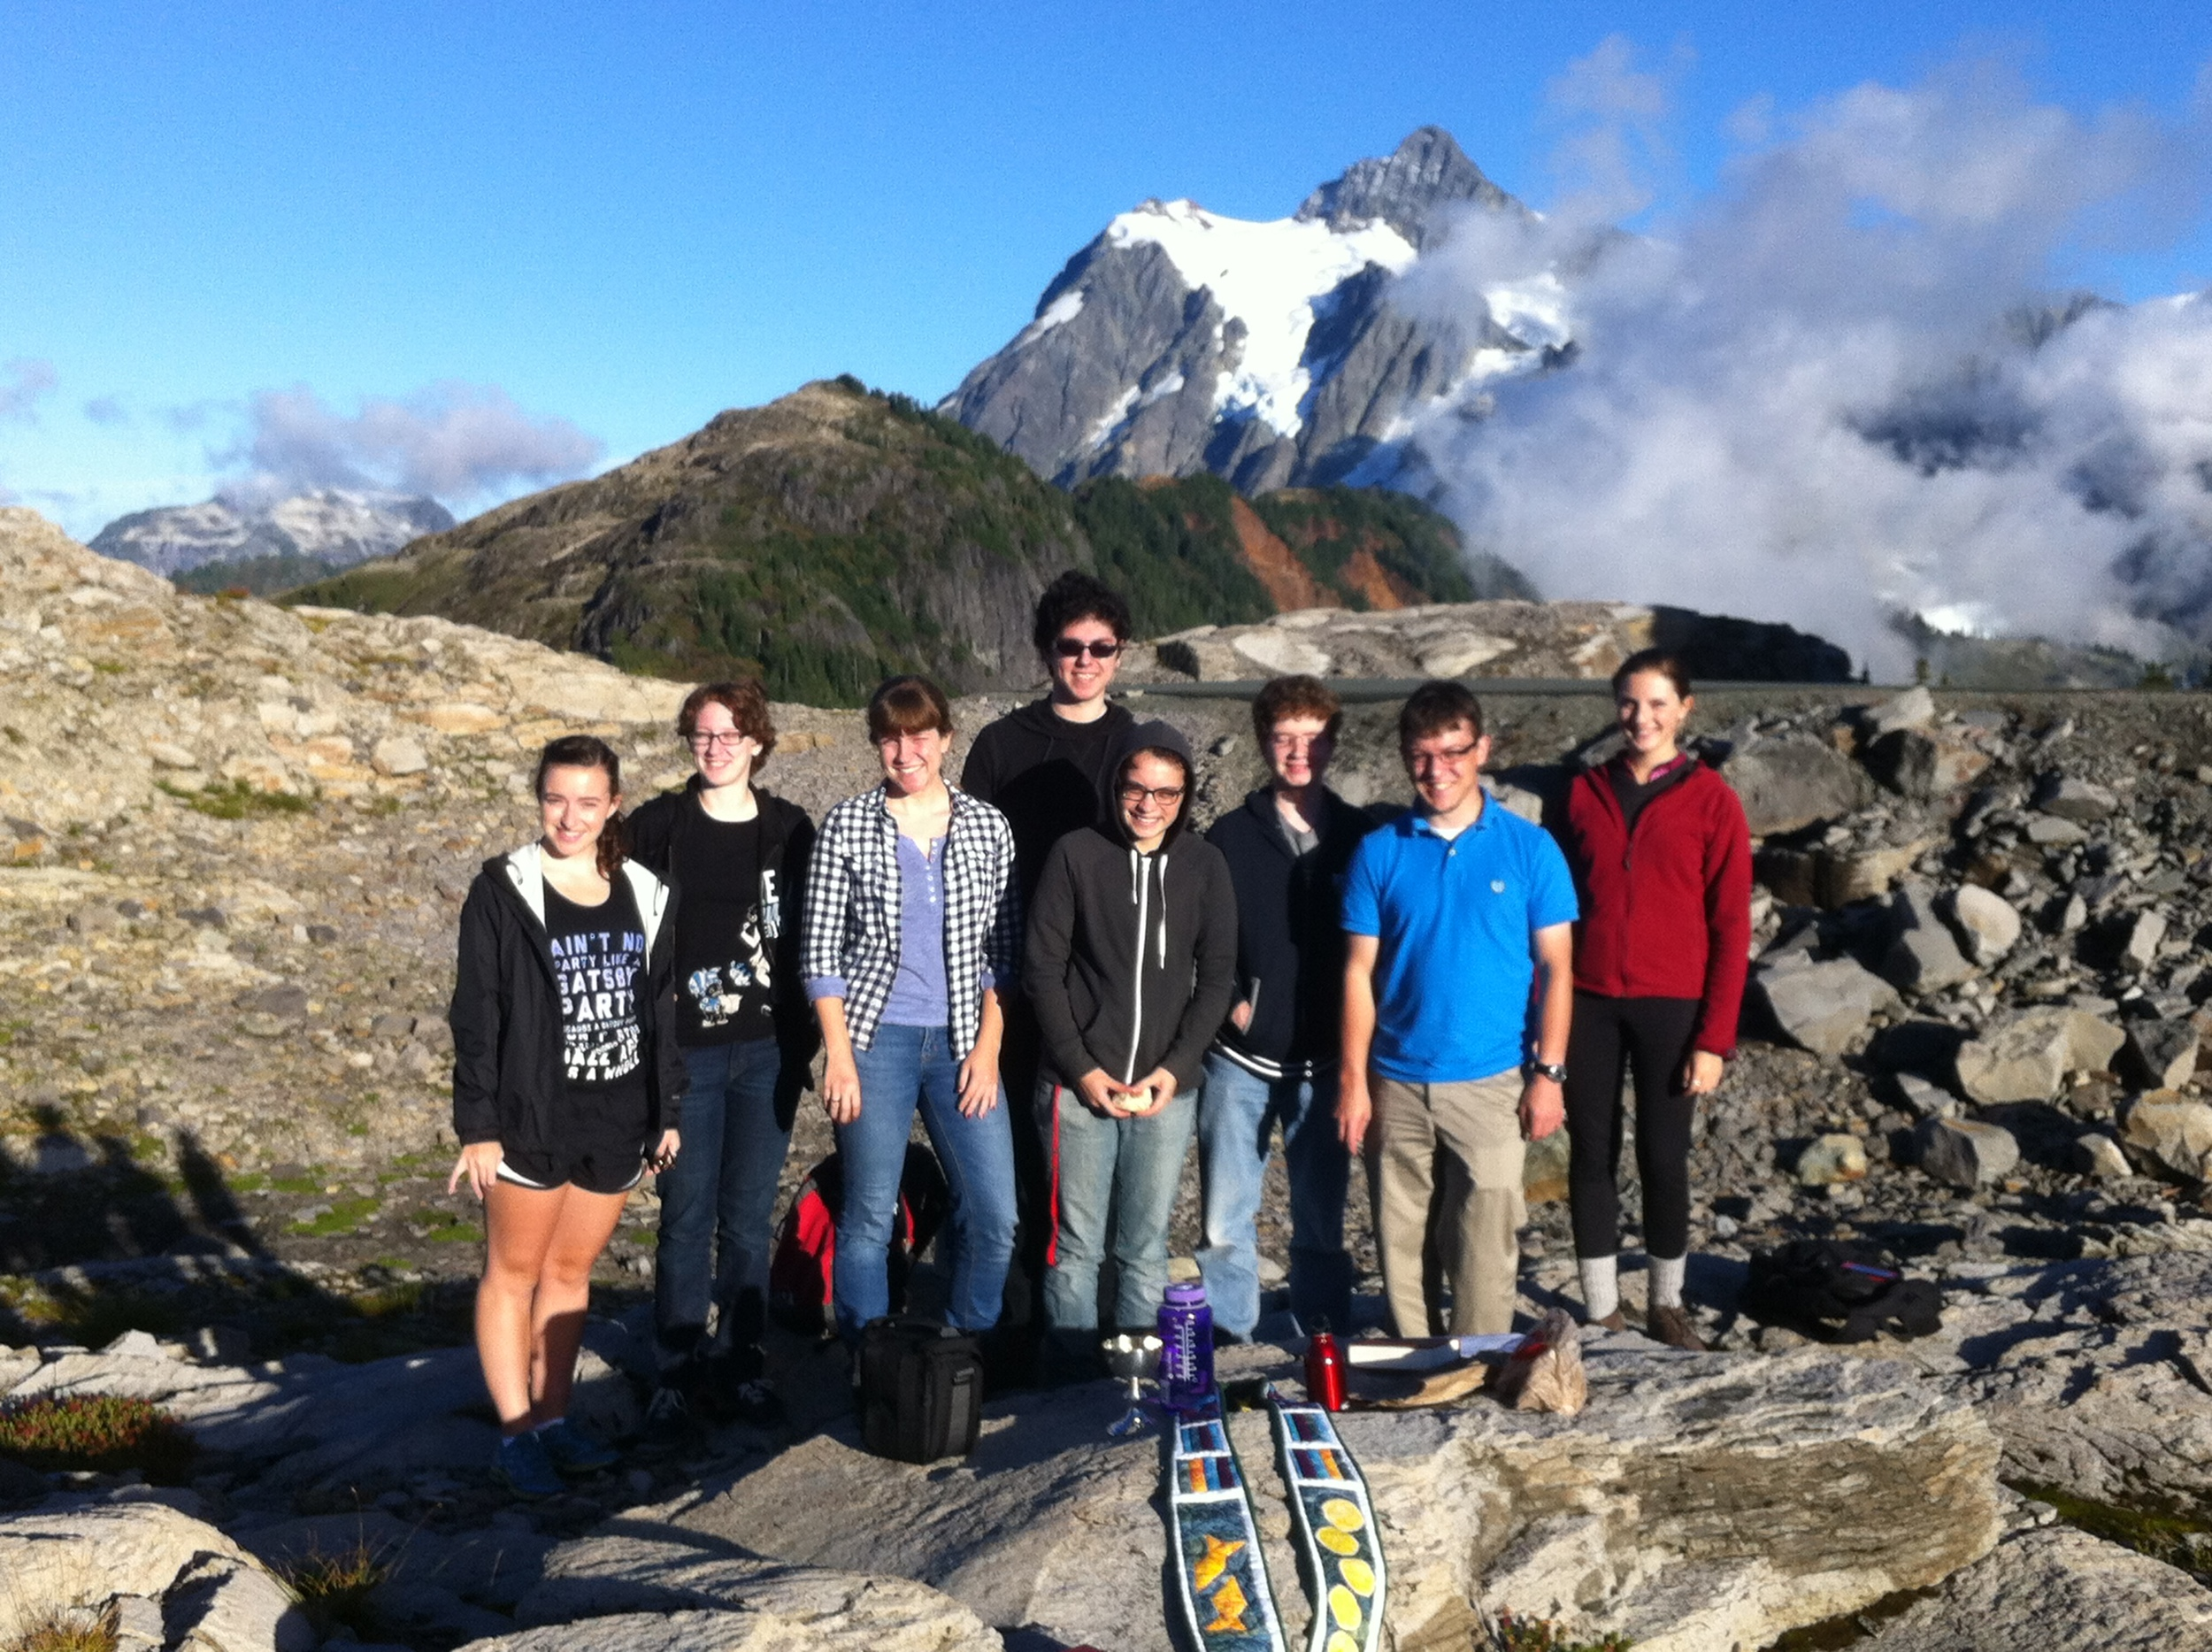 Here we are at Artist Point, northeast of Mount Baker, where we celebrated the Eucharist on a Saturday evening just before sunset.